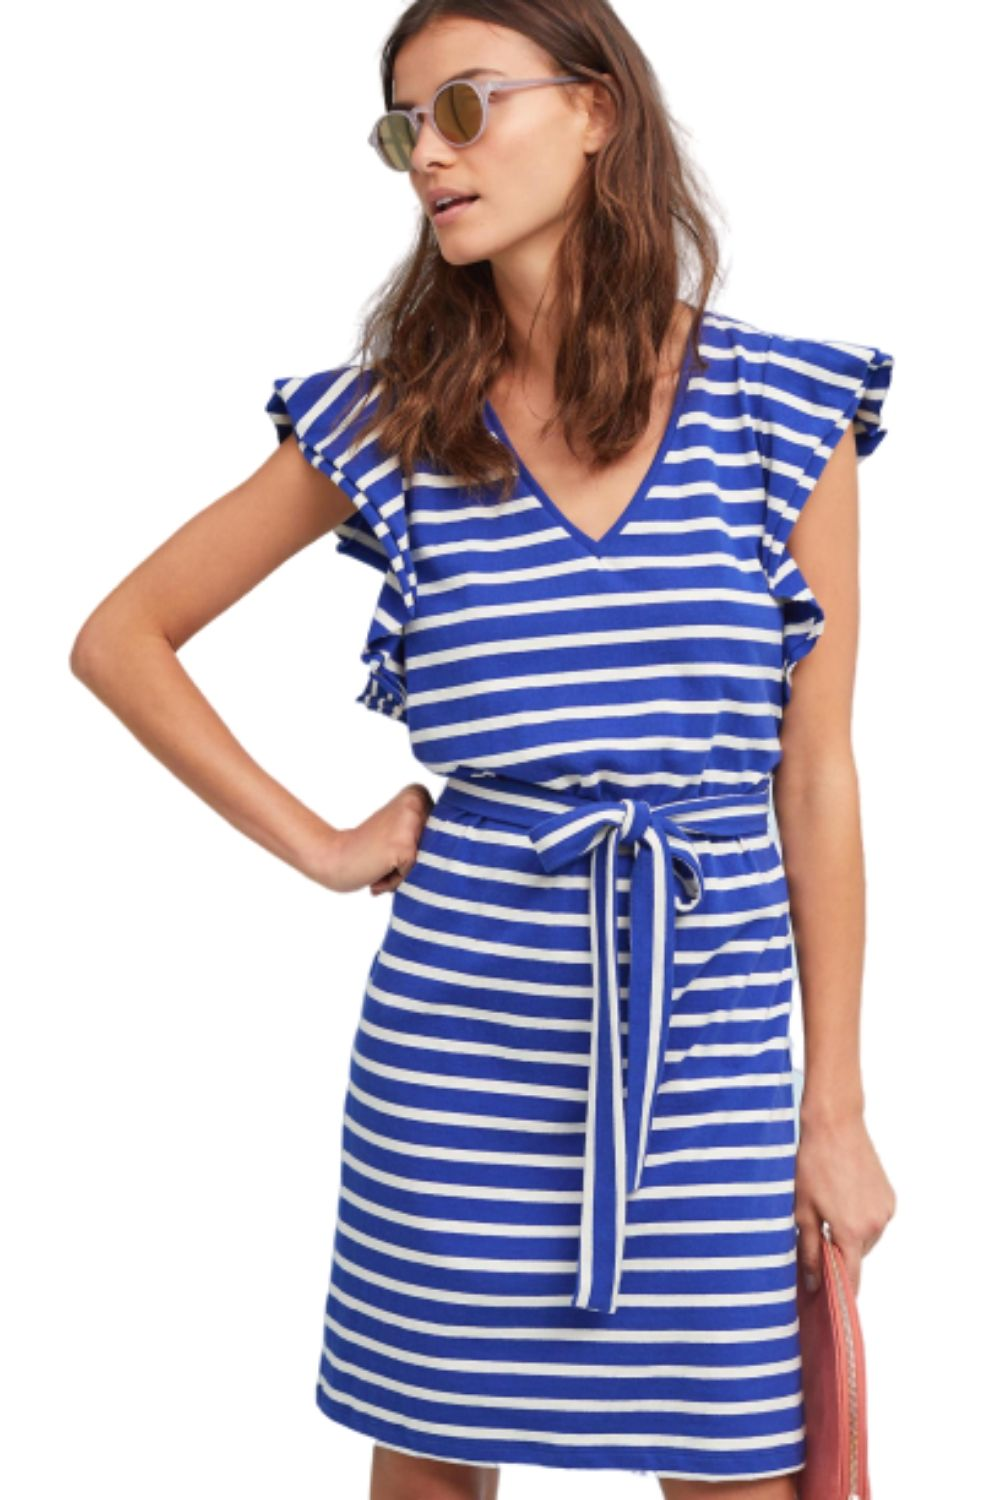 Anthropologie Women's Dolan Flutter-Sleeve Blue Cotton Striped Belted Dress - XL - Luxe Fashion Finds